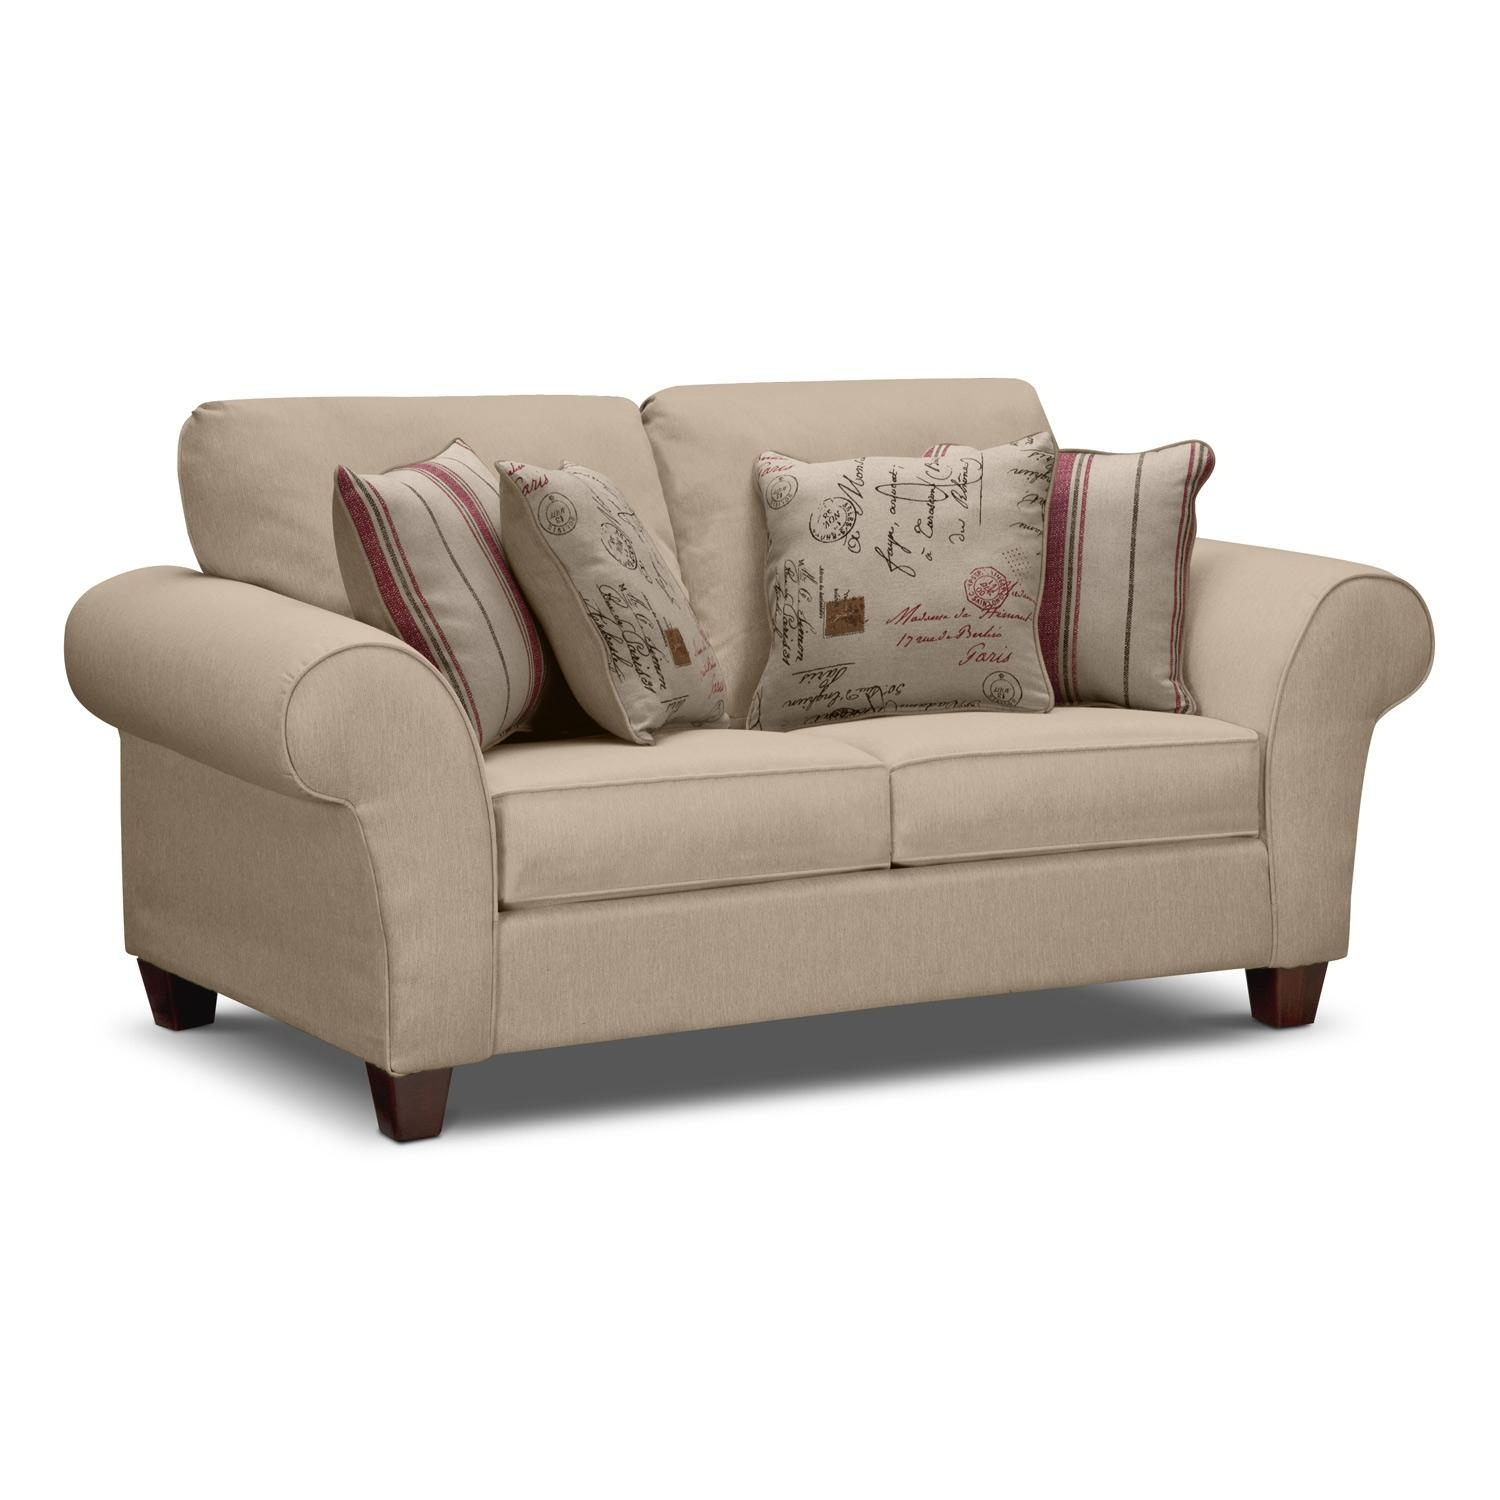 Sofas Center : Frightening Twin Sofa Sleeper Image Inspirations Within Twin Sofa Chairs (View 9 of 20)